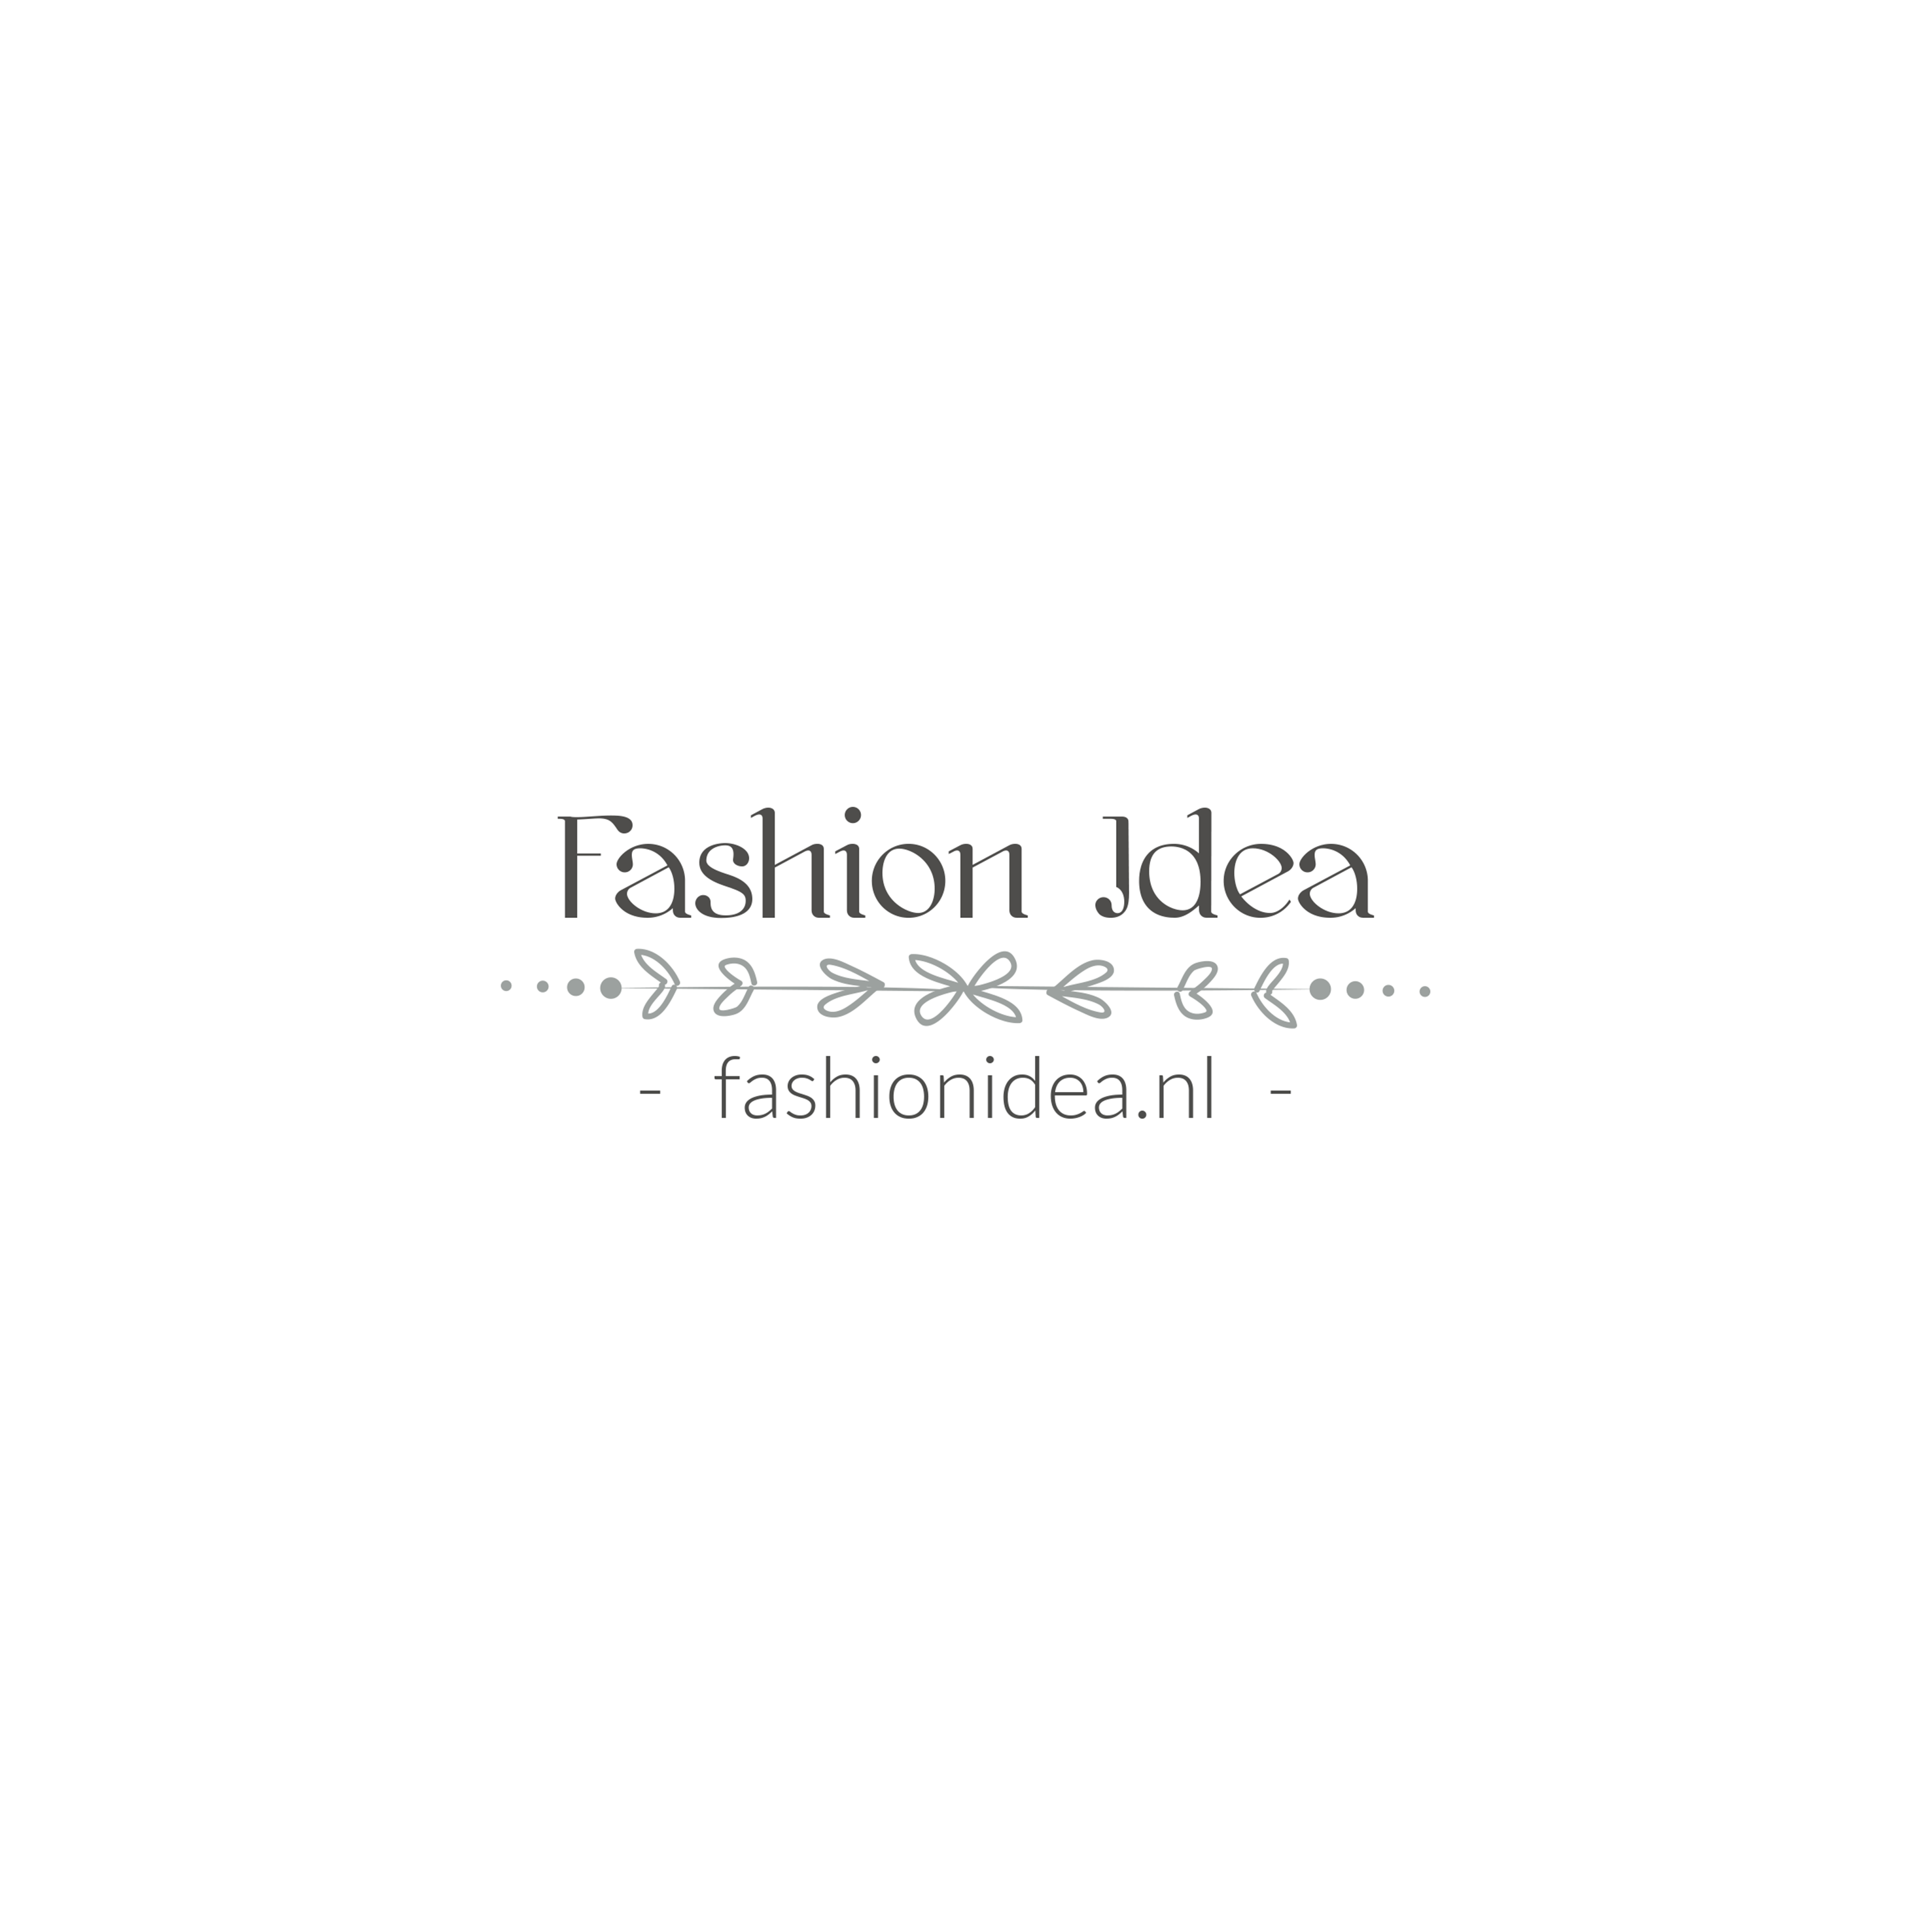 Fashion idea Logo Design